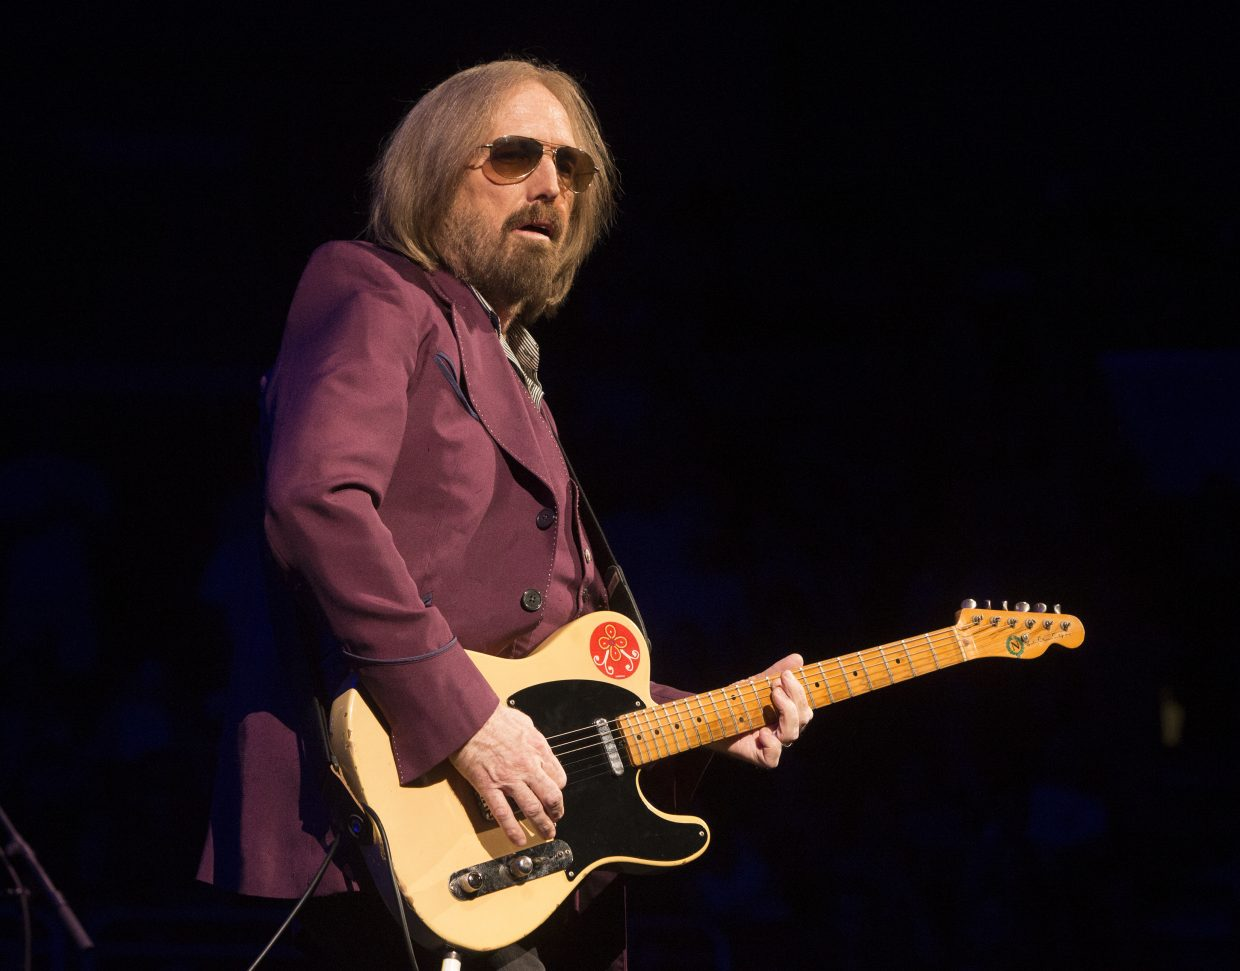 The 20 Best Tom Petty Songs, Ranked